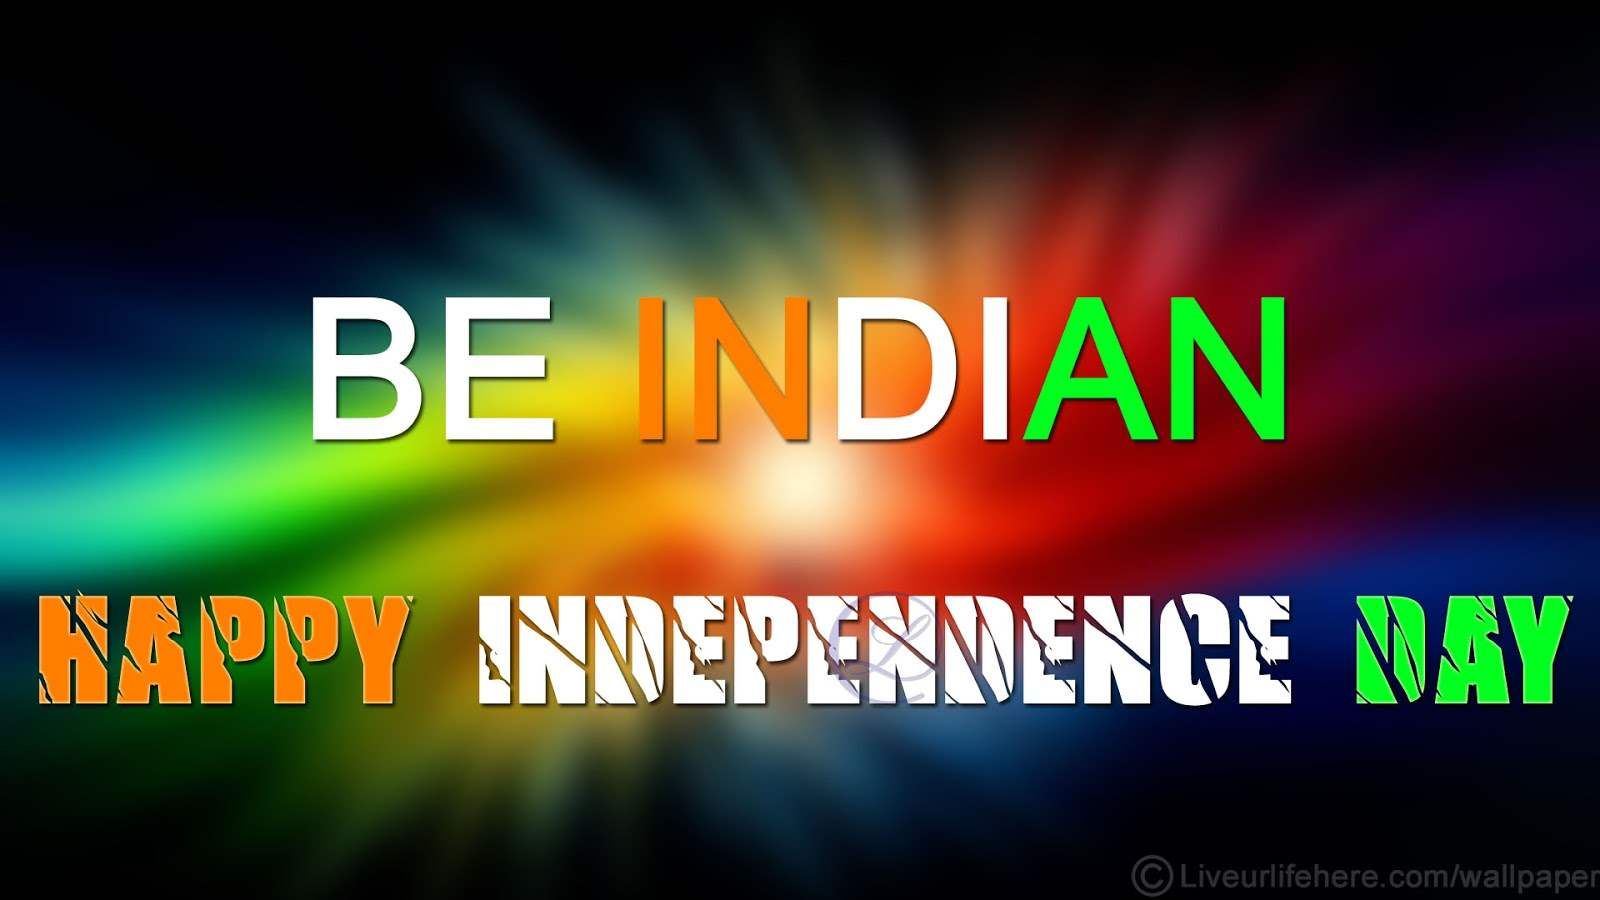 Indian Independence Day Wallpapers Cws 044 Indian Independence Day